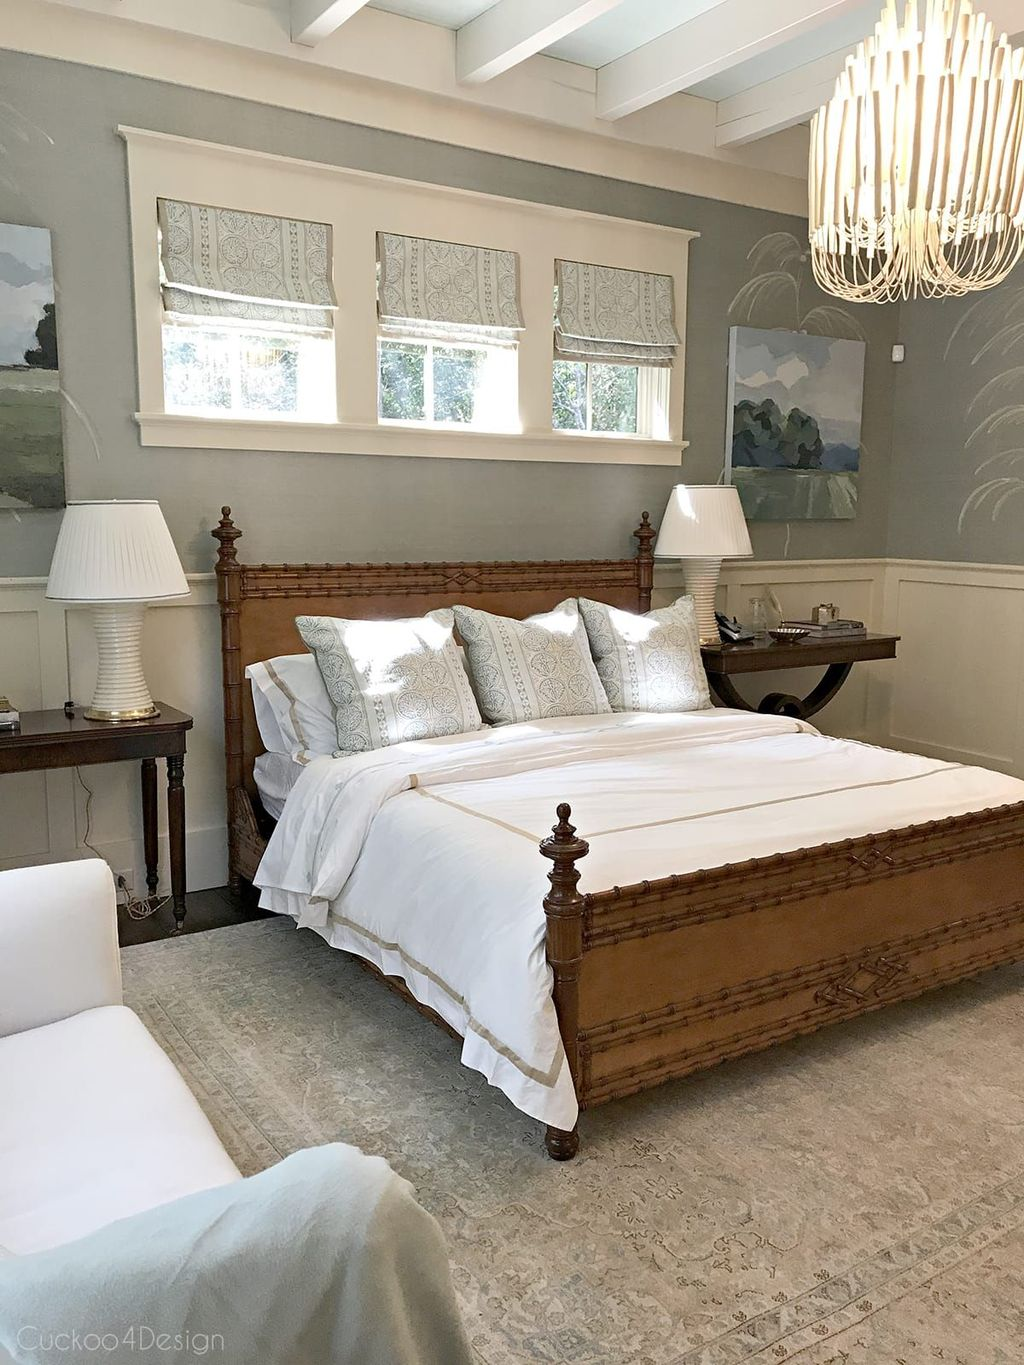 Stunning French Bedroom Decor Ideas That Will Inspire You 09